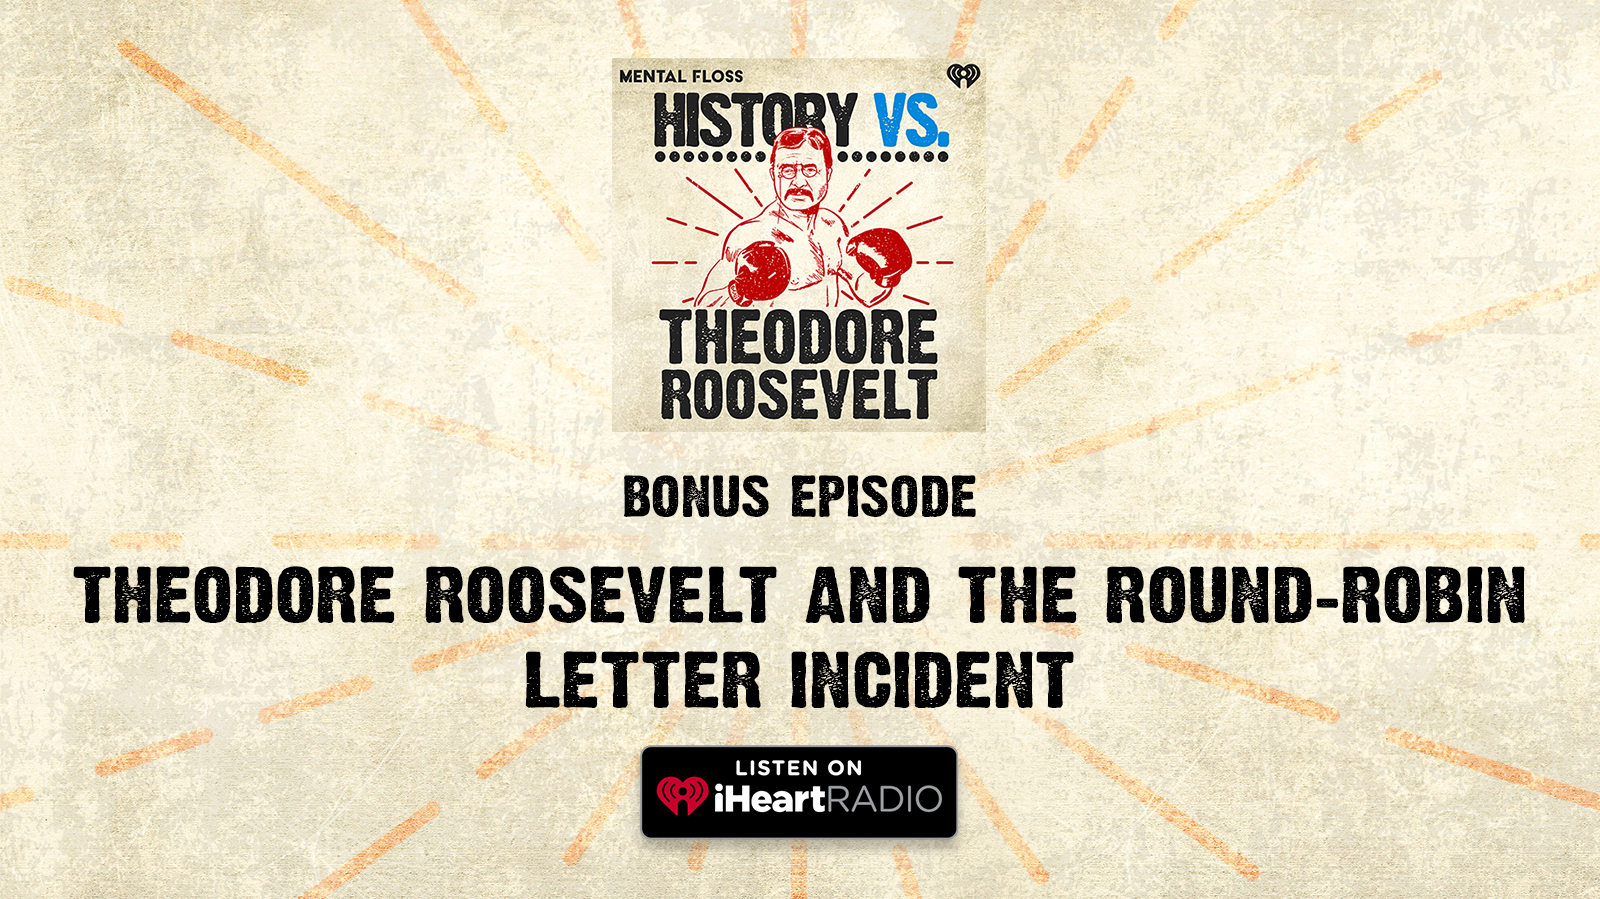 History Vs. Bonus Episode: Theodore Roosevelt and the Round-Robin Letter Incident